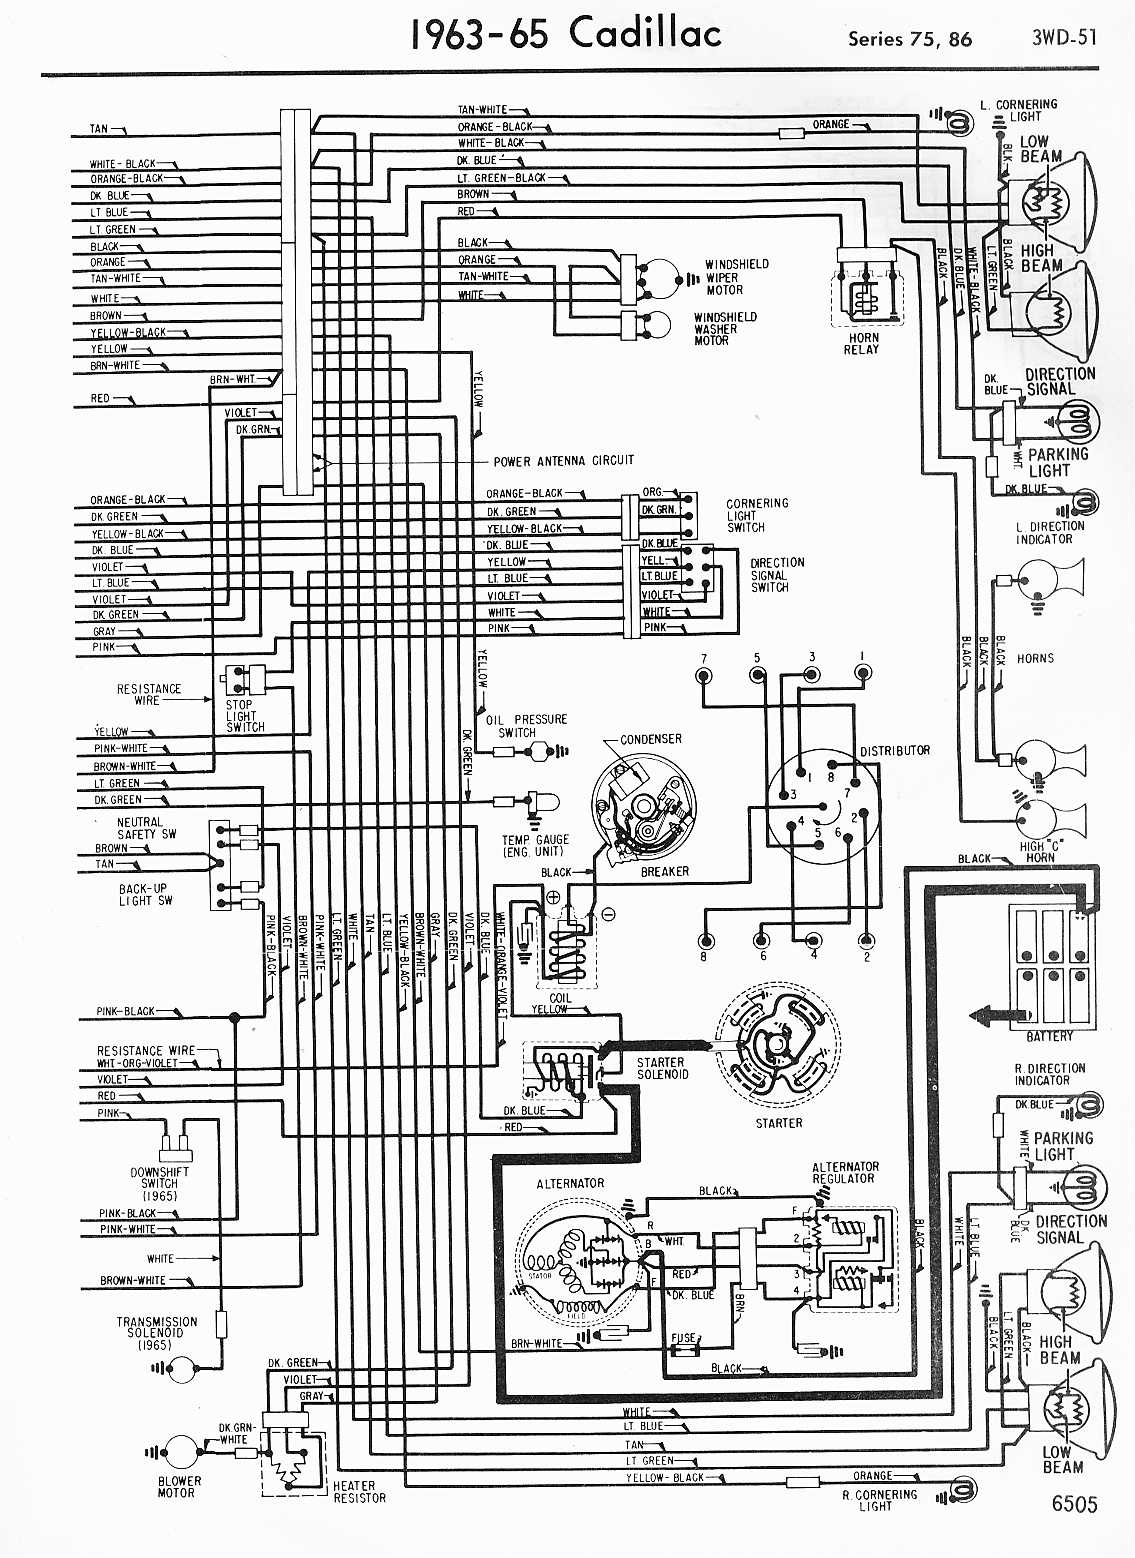 MWireCadi65_3WD 051 cadillac wiring diagrams 1992 cadillac eldorado wiring diagram 1996 cadillac deville fuse box diagram at n-0.co